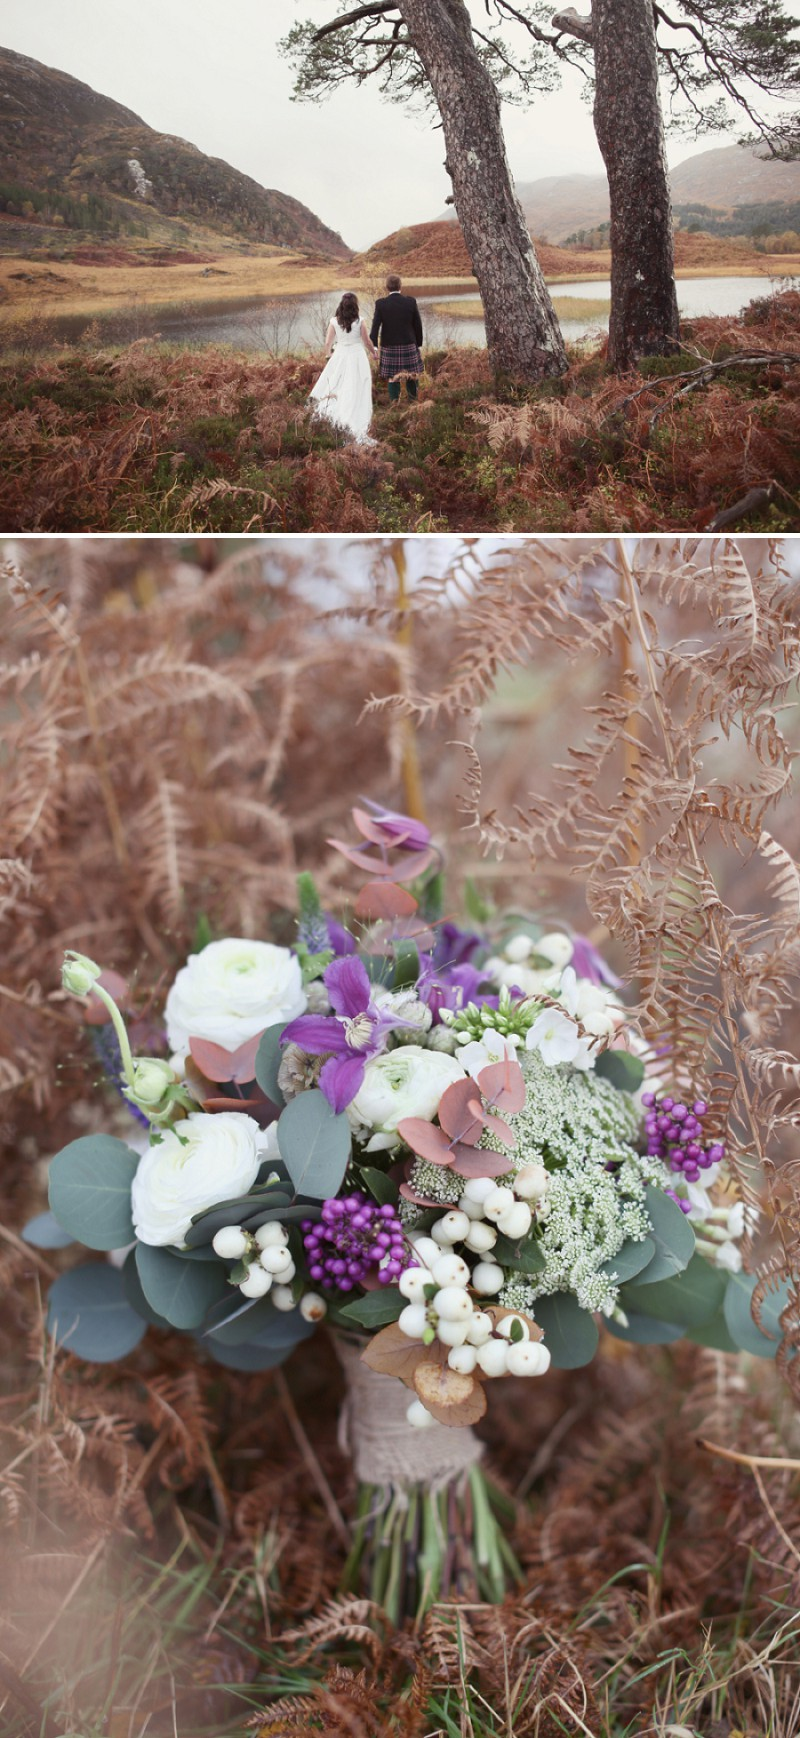 An Exquisite Winter Humanist Wedding By Glenfinnan Loch In Scotland With An Ian Stuart Dress And Tartan Wedding Theme By Craig And Eva Sanders Photography. 0001 Loch Love At Glenfinnan.